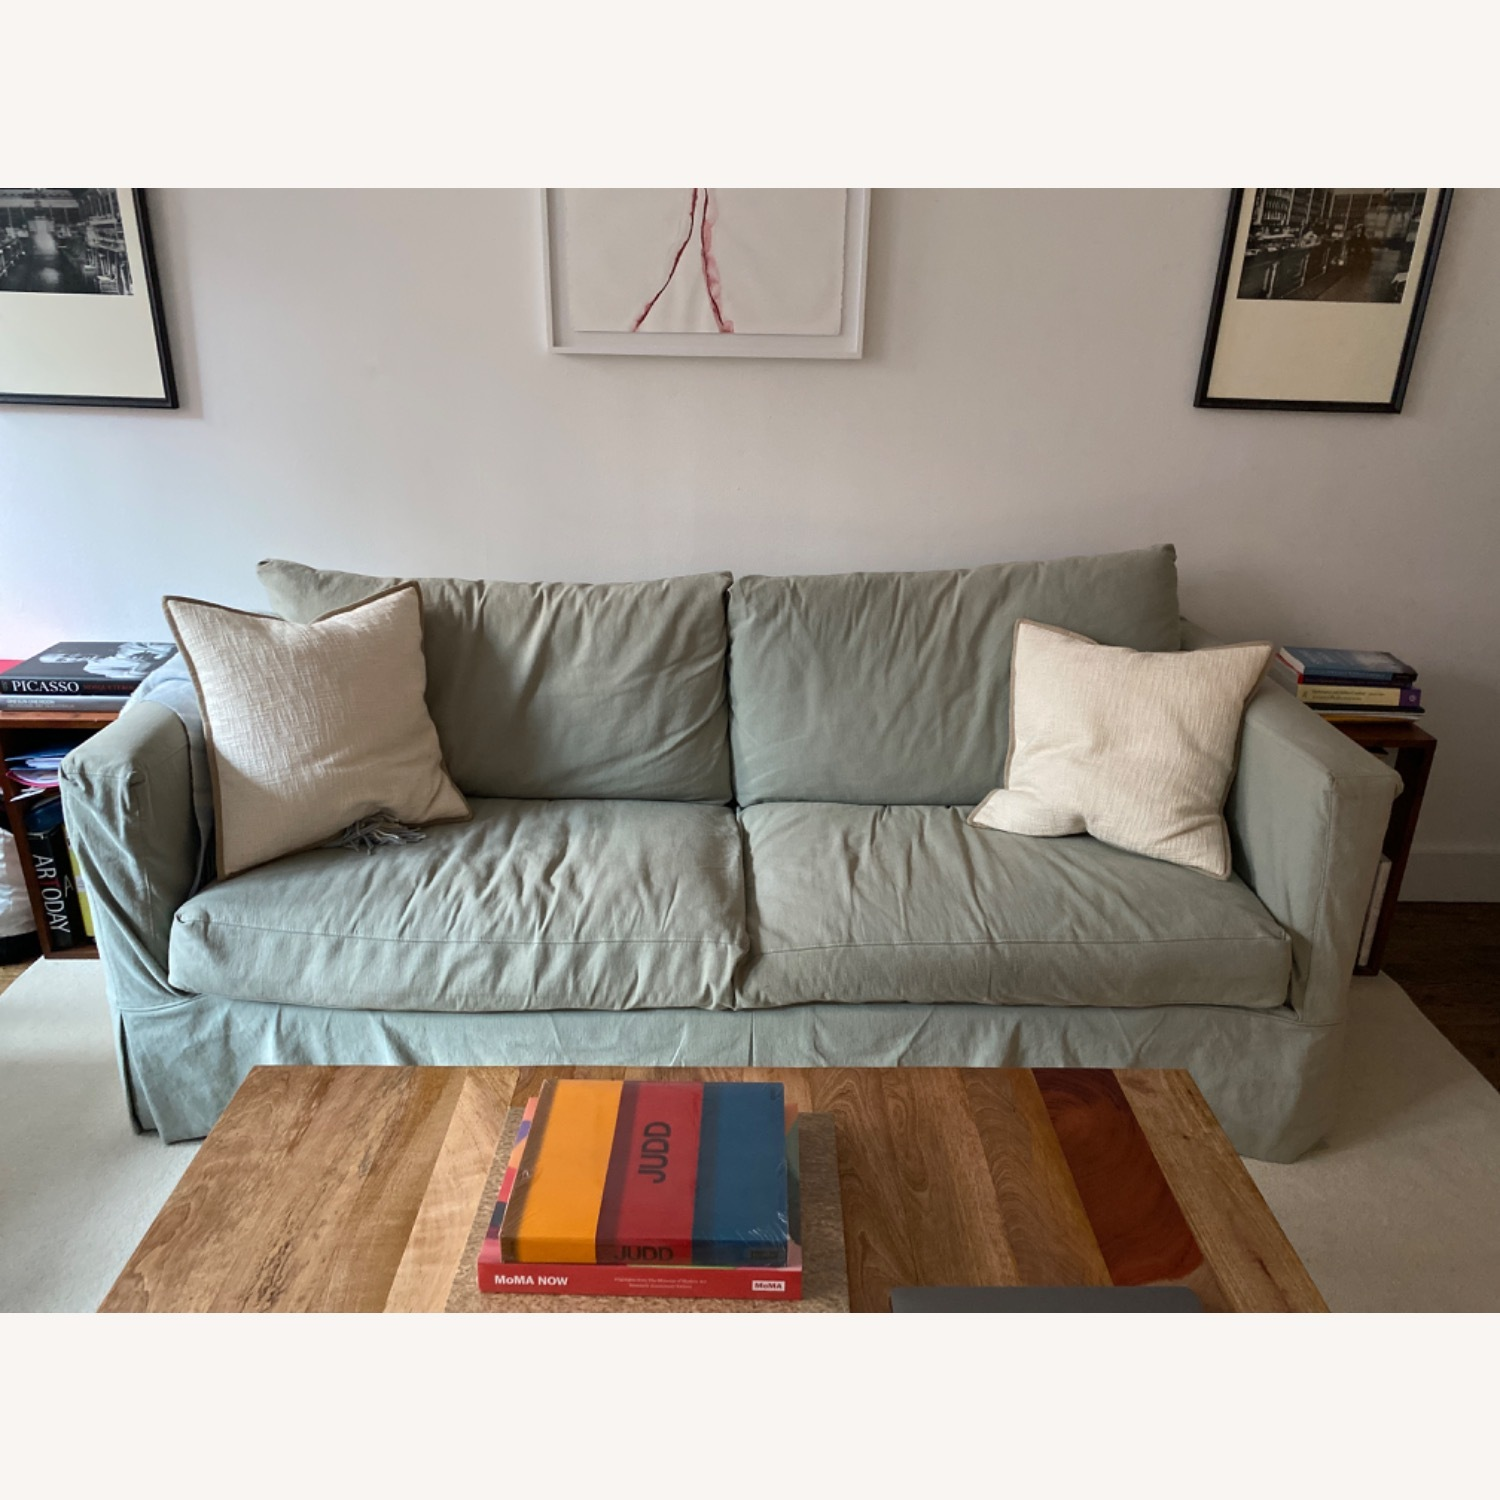 Crate and Barrel Sea Foam Green Couch - image-1